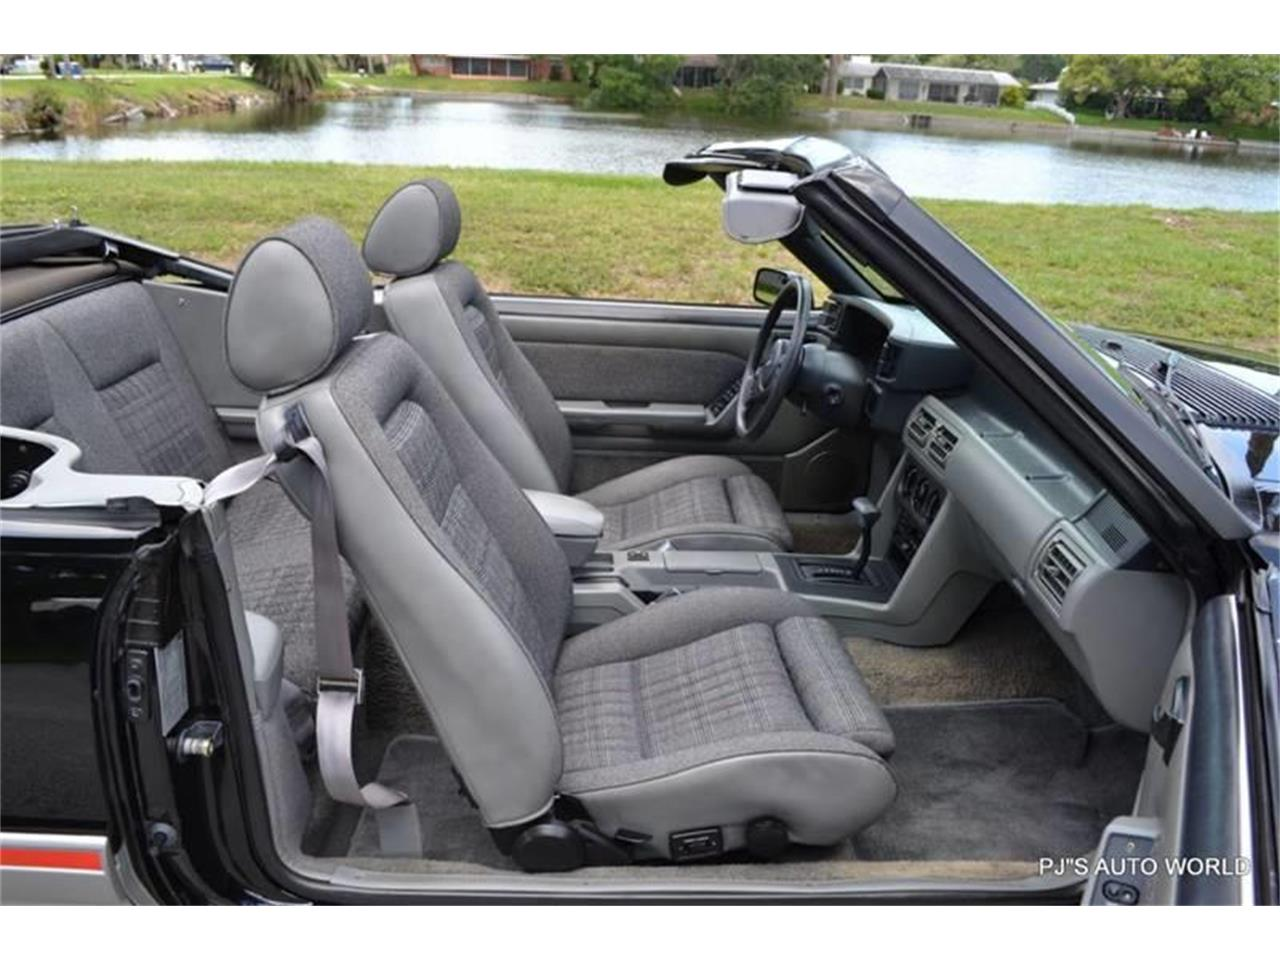 Large Picture of '89 Ford Mustang located in Clearwater Florida - $17,900.00 Offered by PJ's Auto World - NGI8